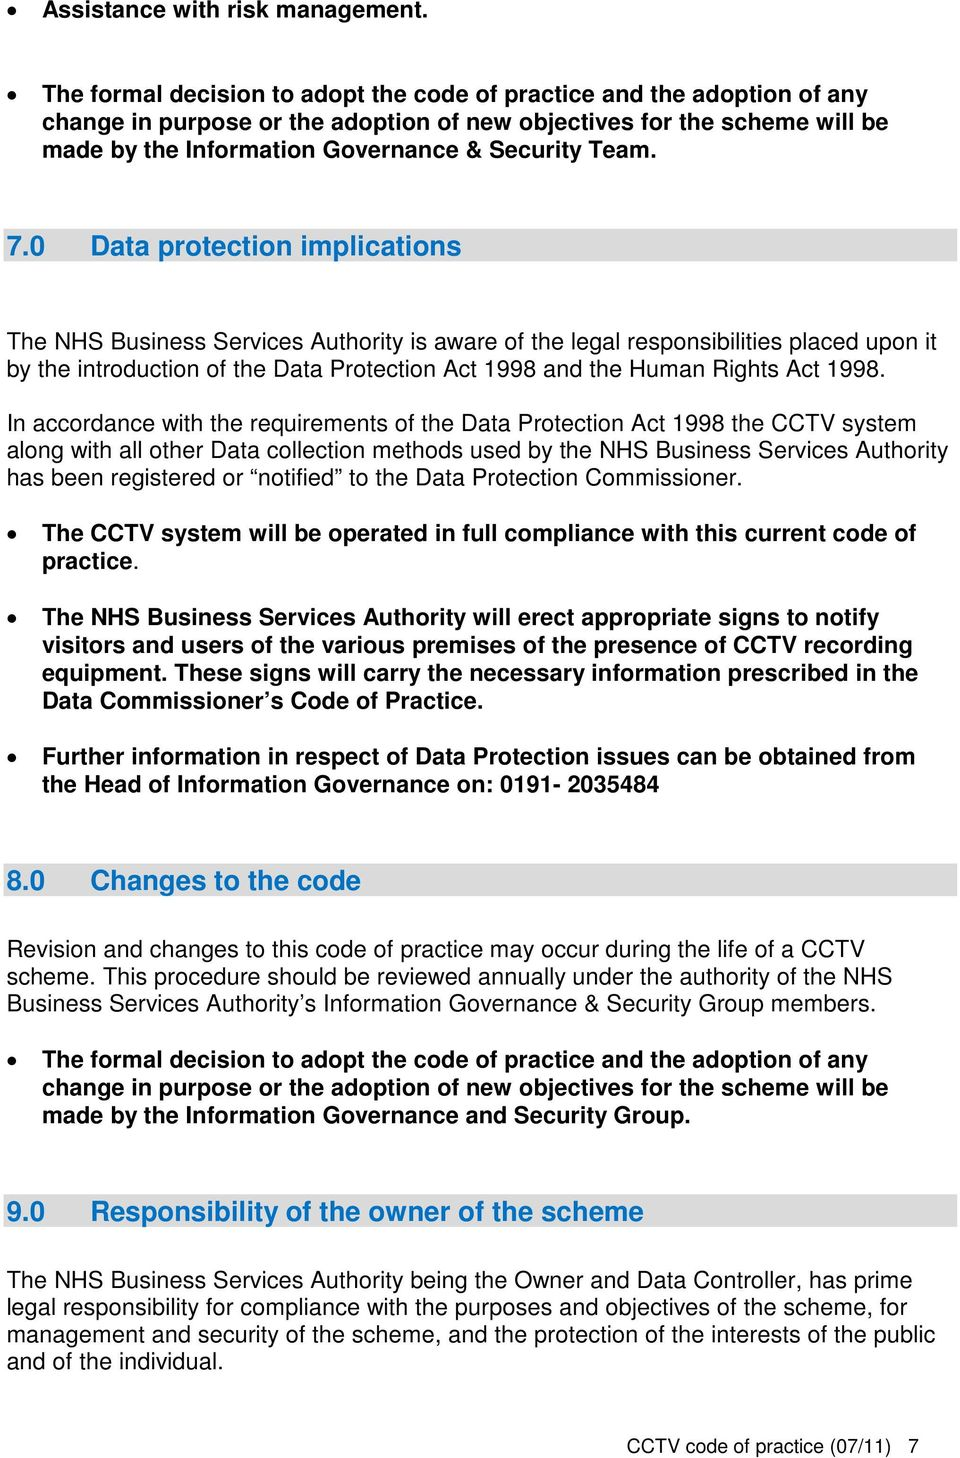 7.0 Data protection implications The NHS Business Services Authority is aware of the legal responsibilities placed upon it by the introduction of the Data Protection Act 1998 and the Human Rights Act